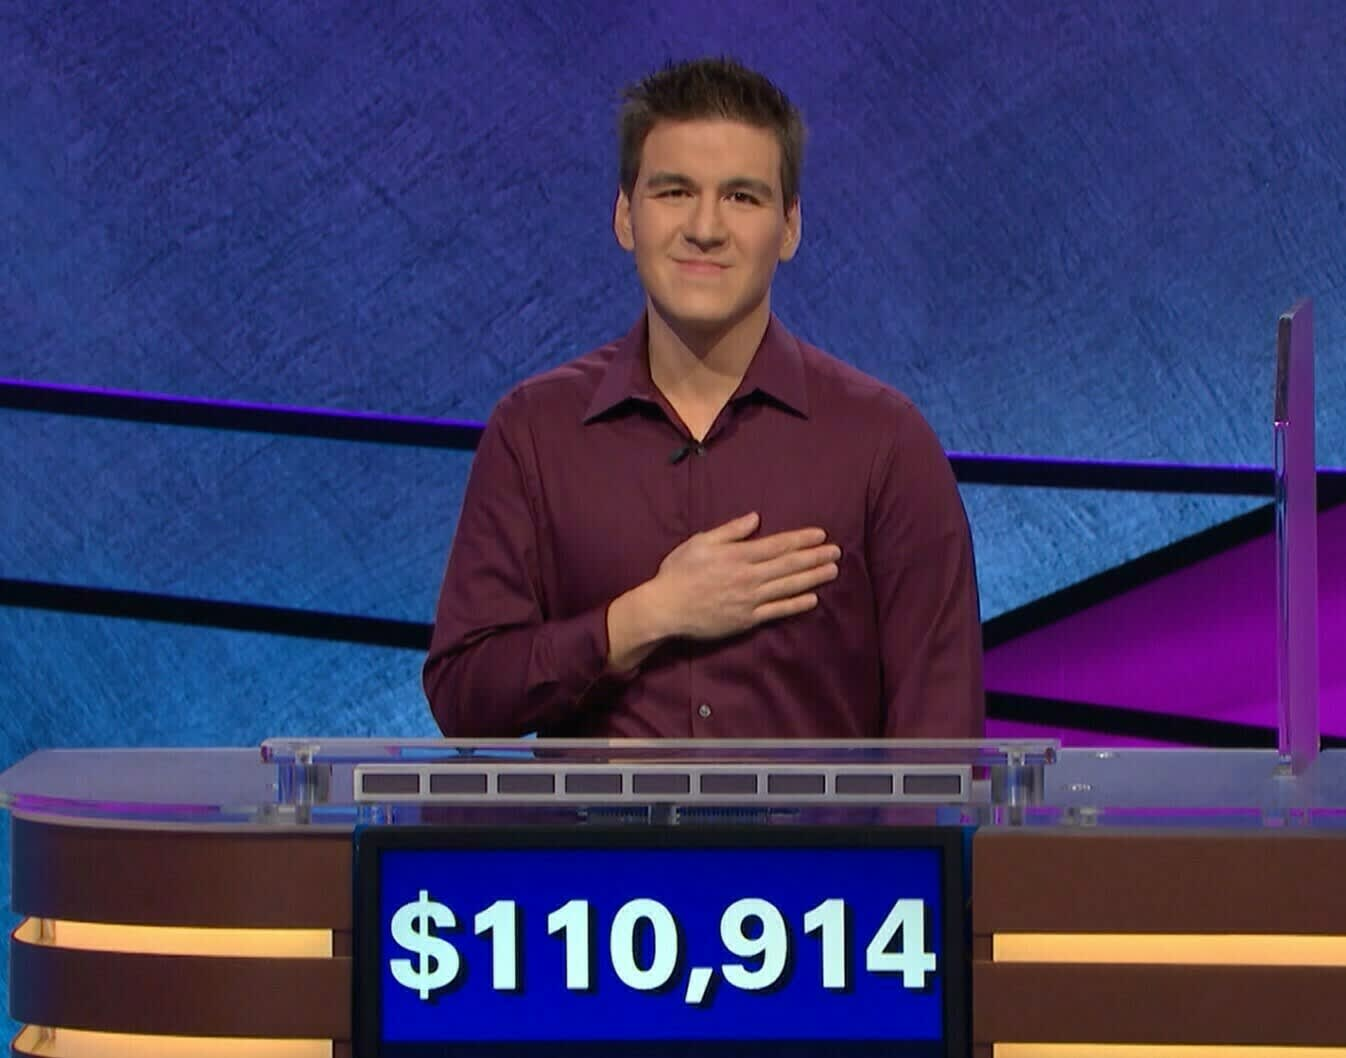 Leaked 'Jeopardy!' footage appears to show reigning champion James Holzhauer's defeat